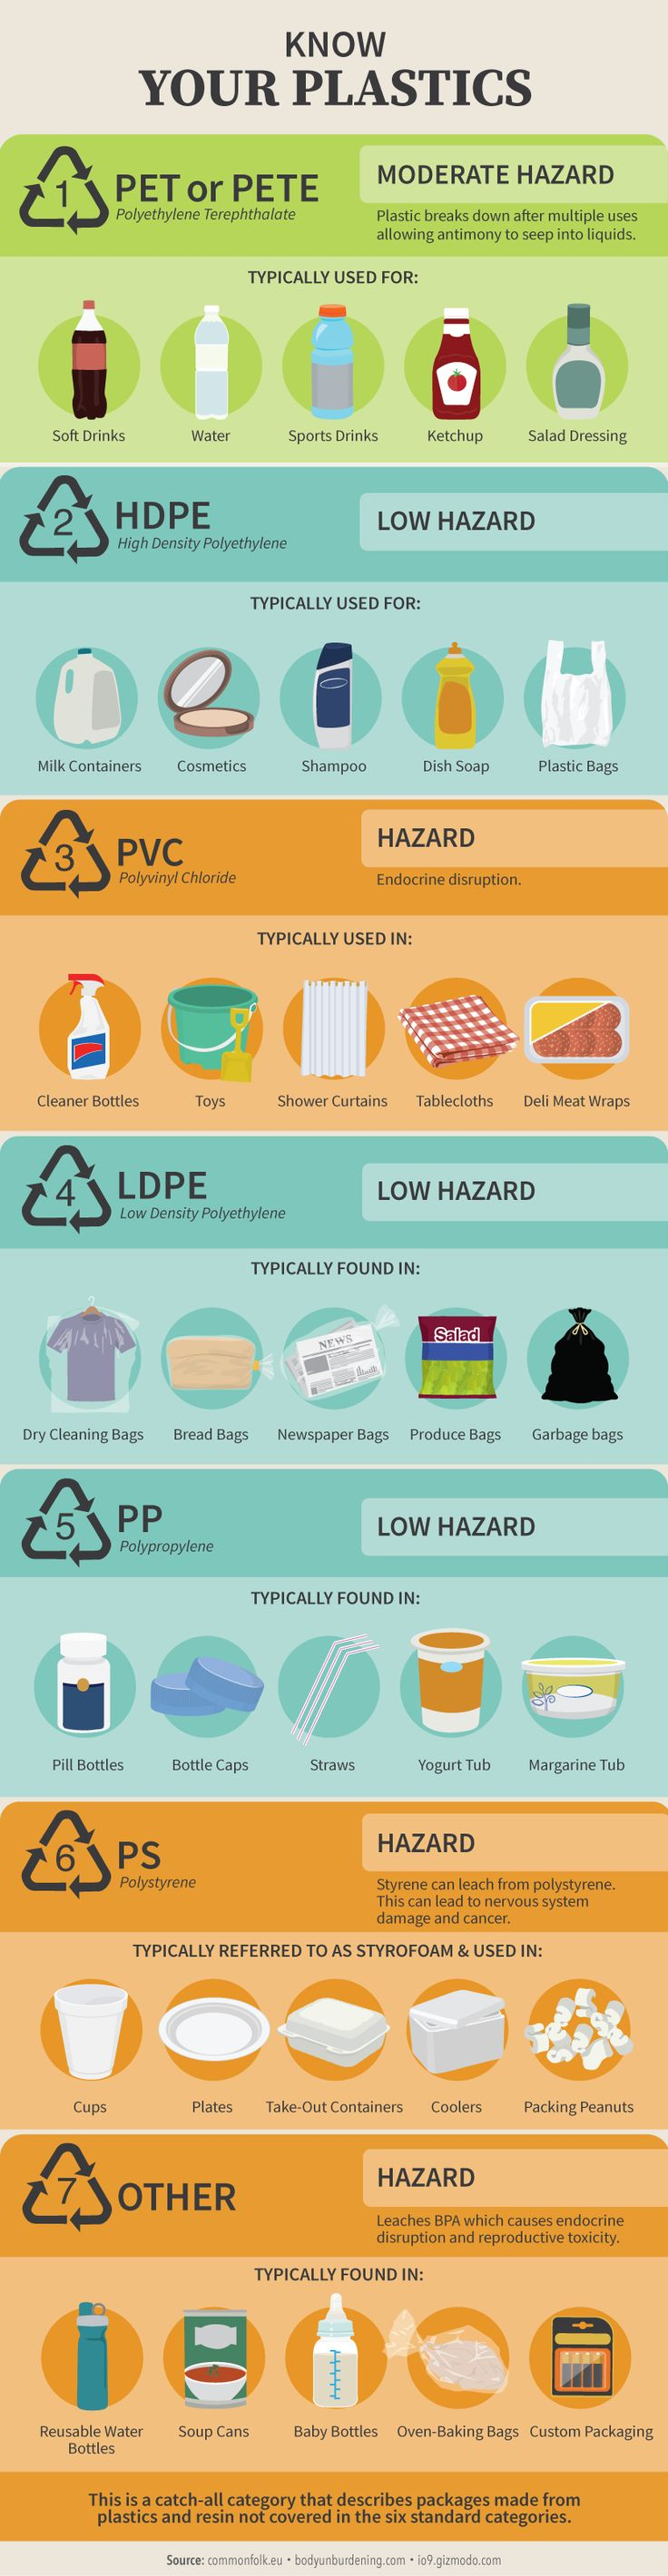 These simple tips can have a big impact on plastic pollution - learn how to use less plastic in your home!                                                                                                                                                                                 More